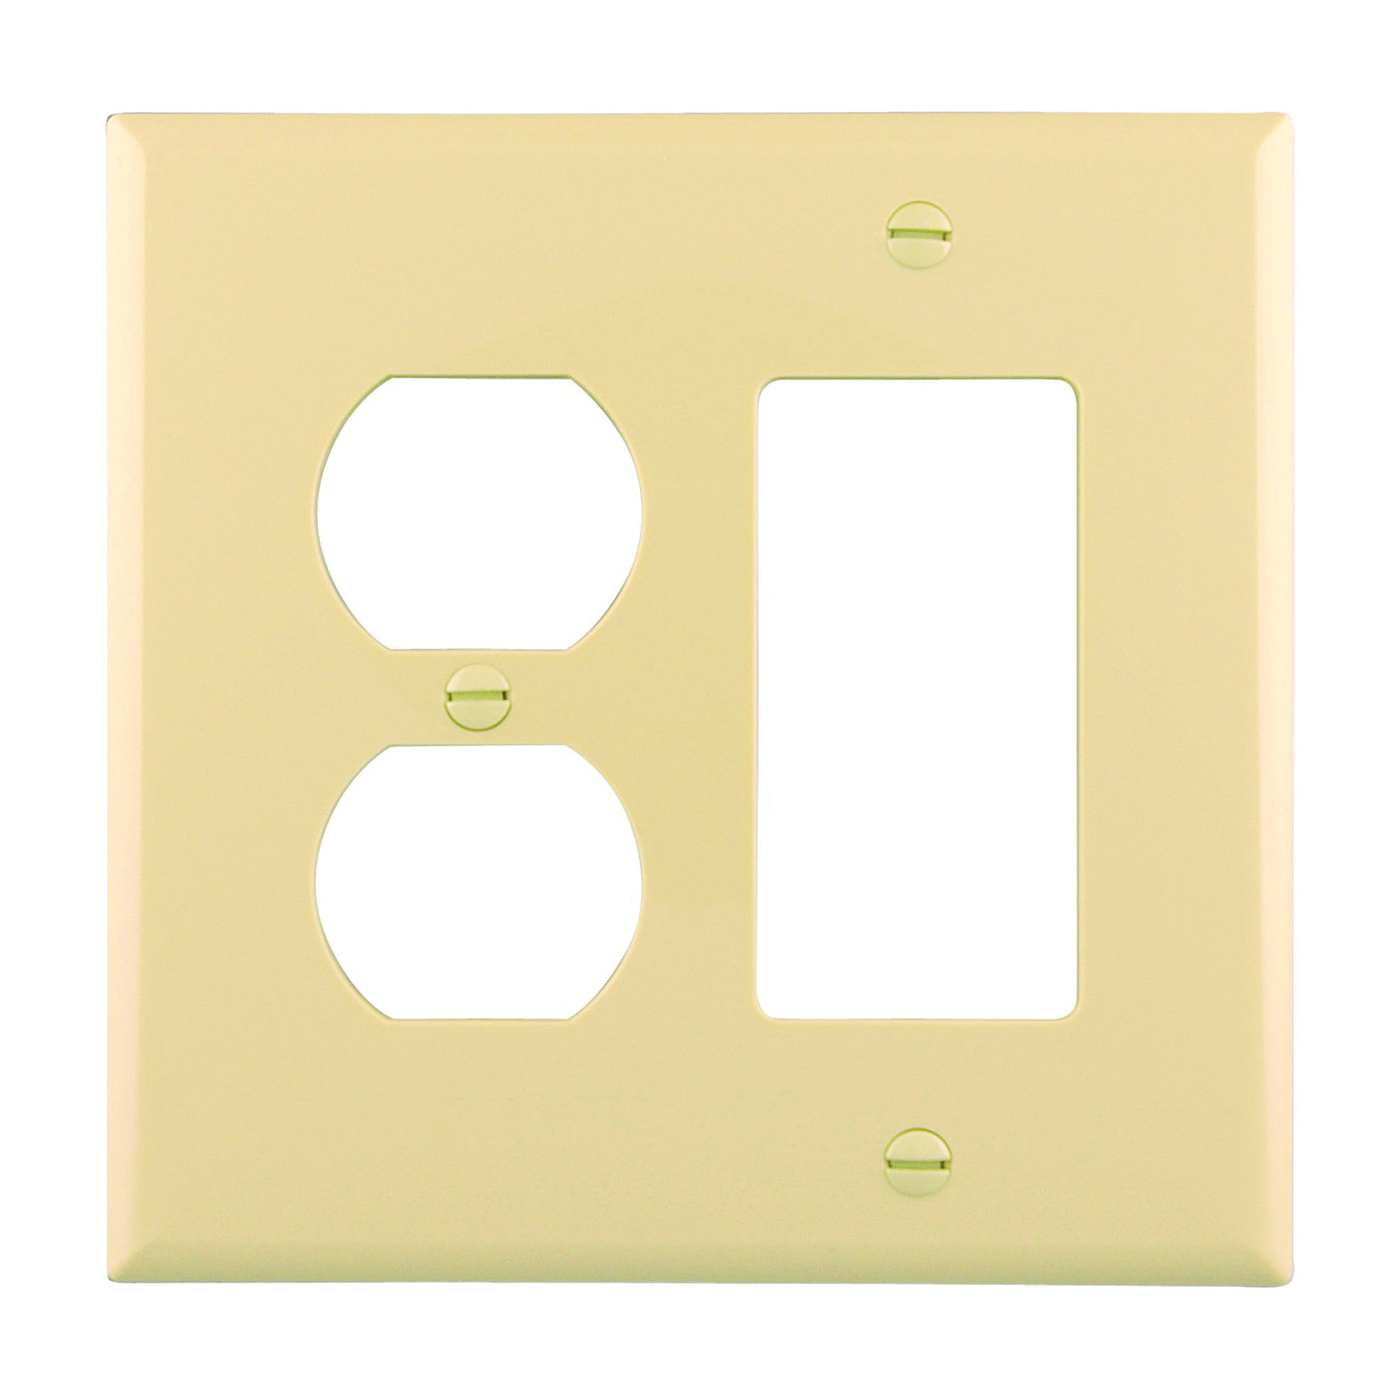 Picture of Eaton Wiring Devices PJ826V Wallplate, 4-7/8 in L, 4-15/16 in W, 2-Gang, Polycarbonate, Ivory, High-Gloss